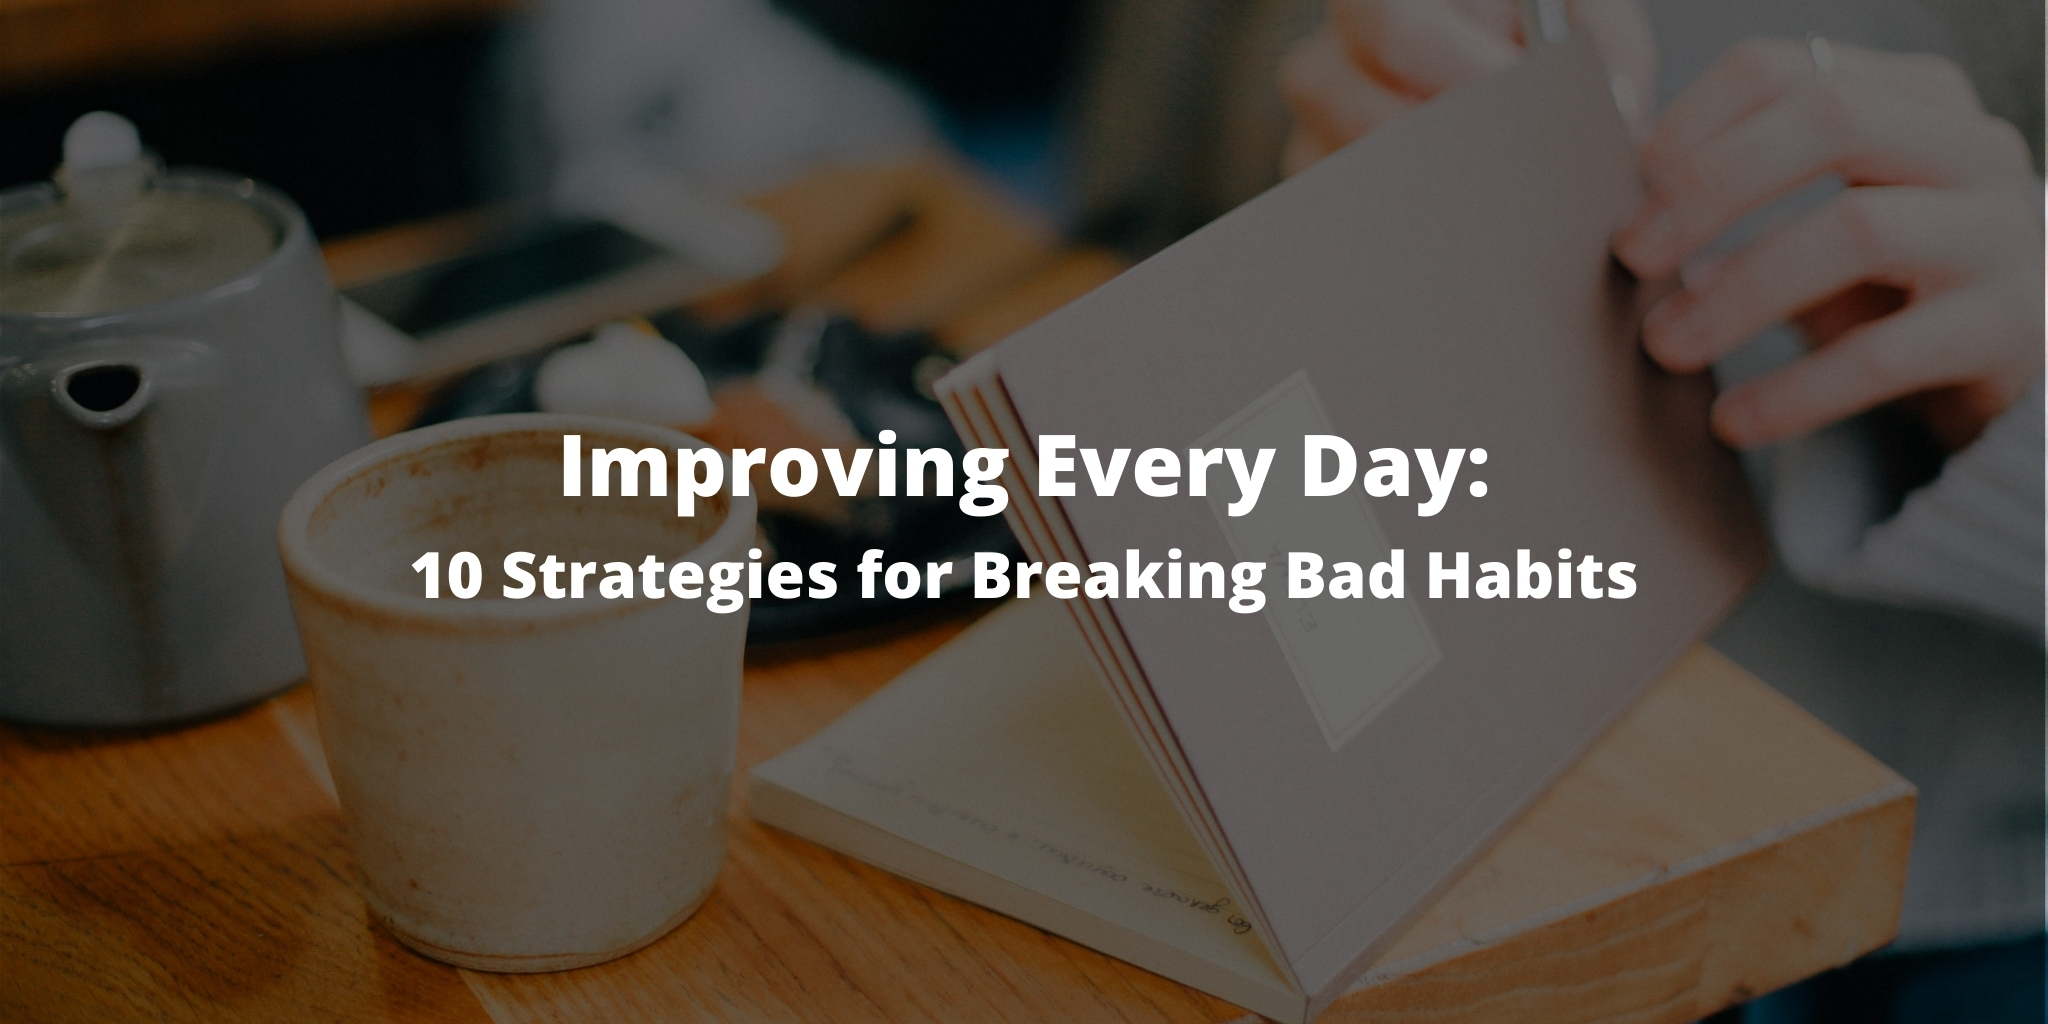 Improving Every Day: 10 Strategies for Breaking Bad Habits